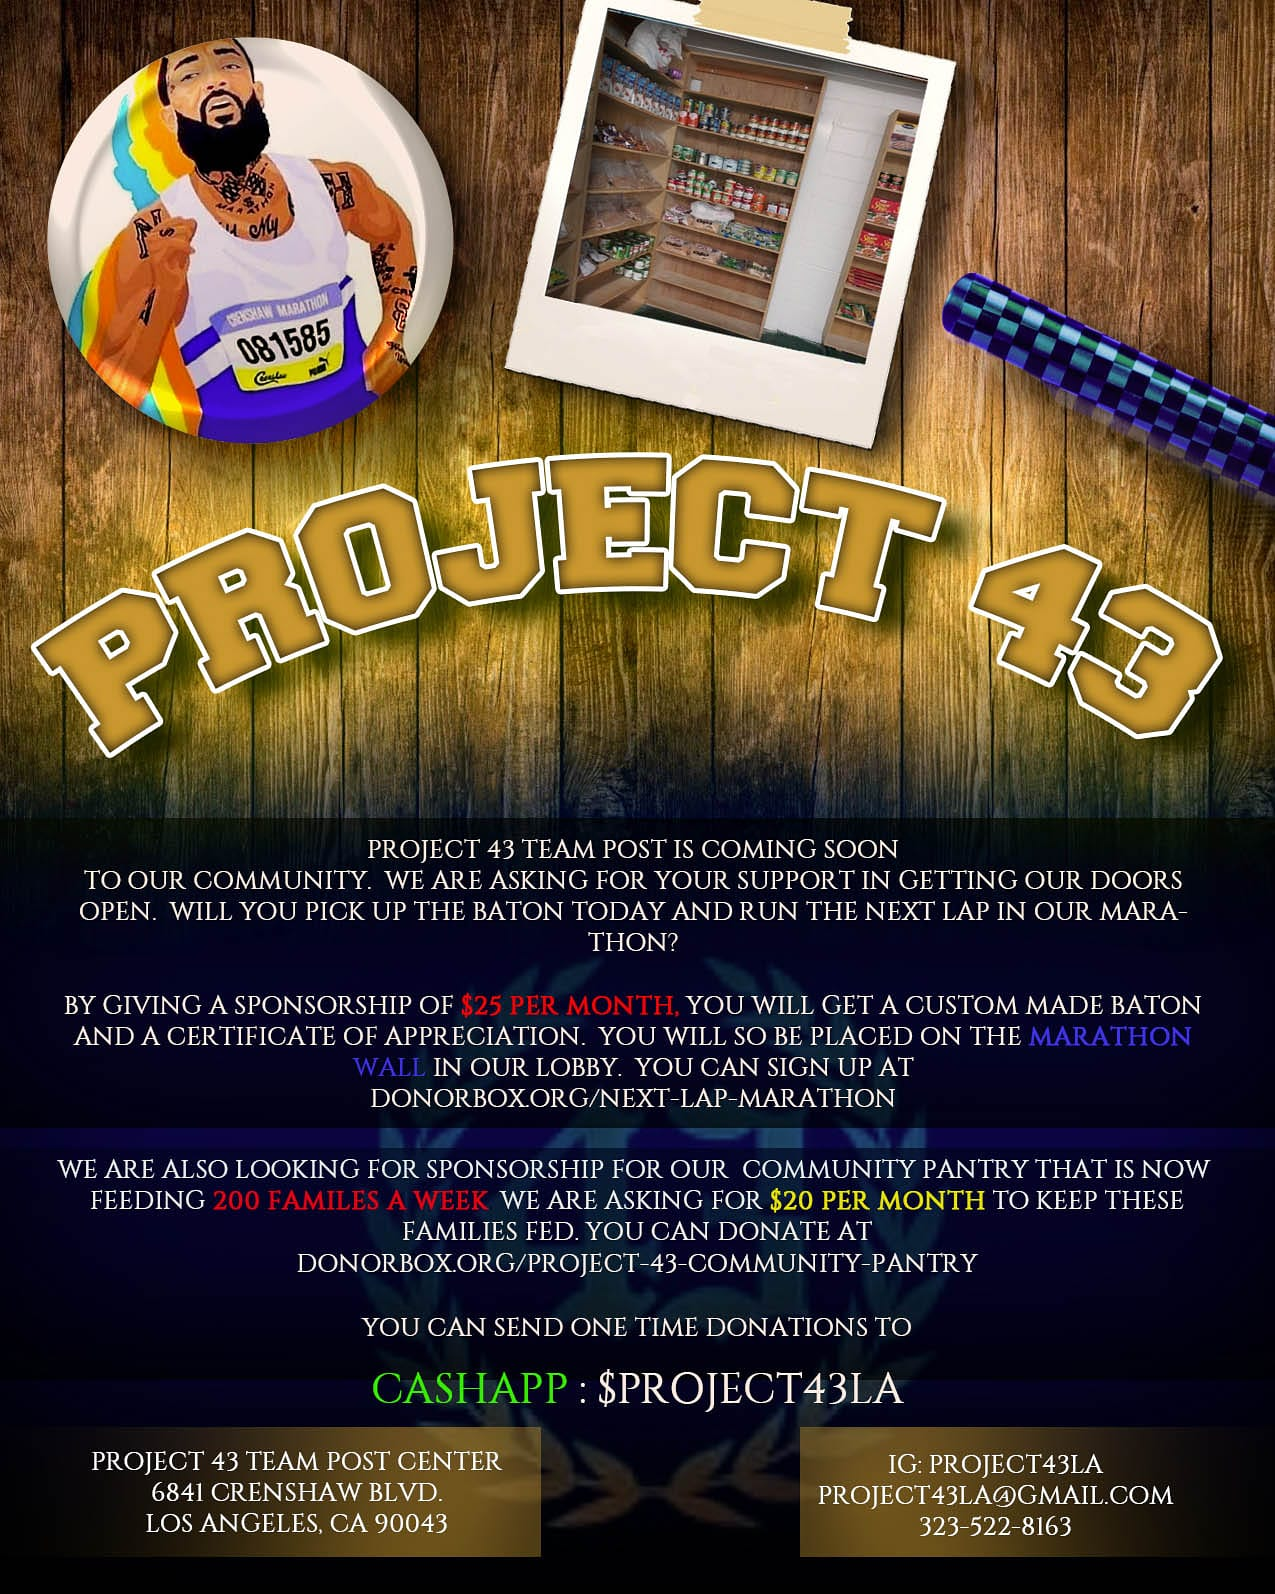 Project 43